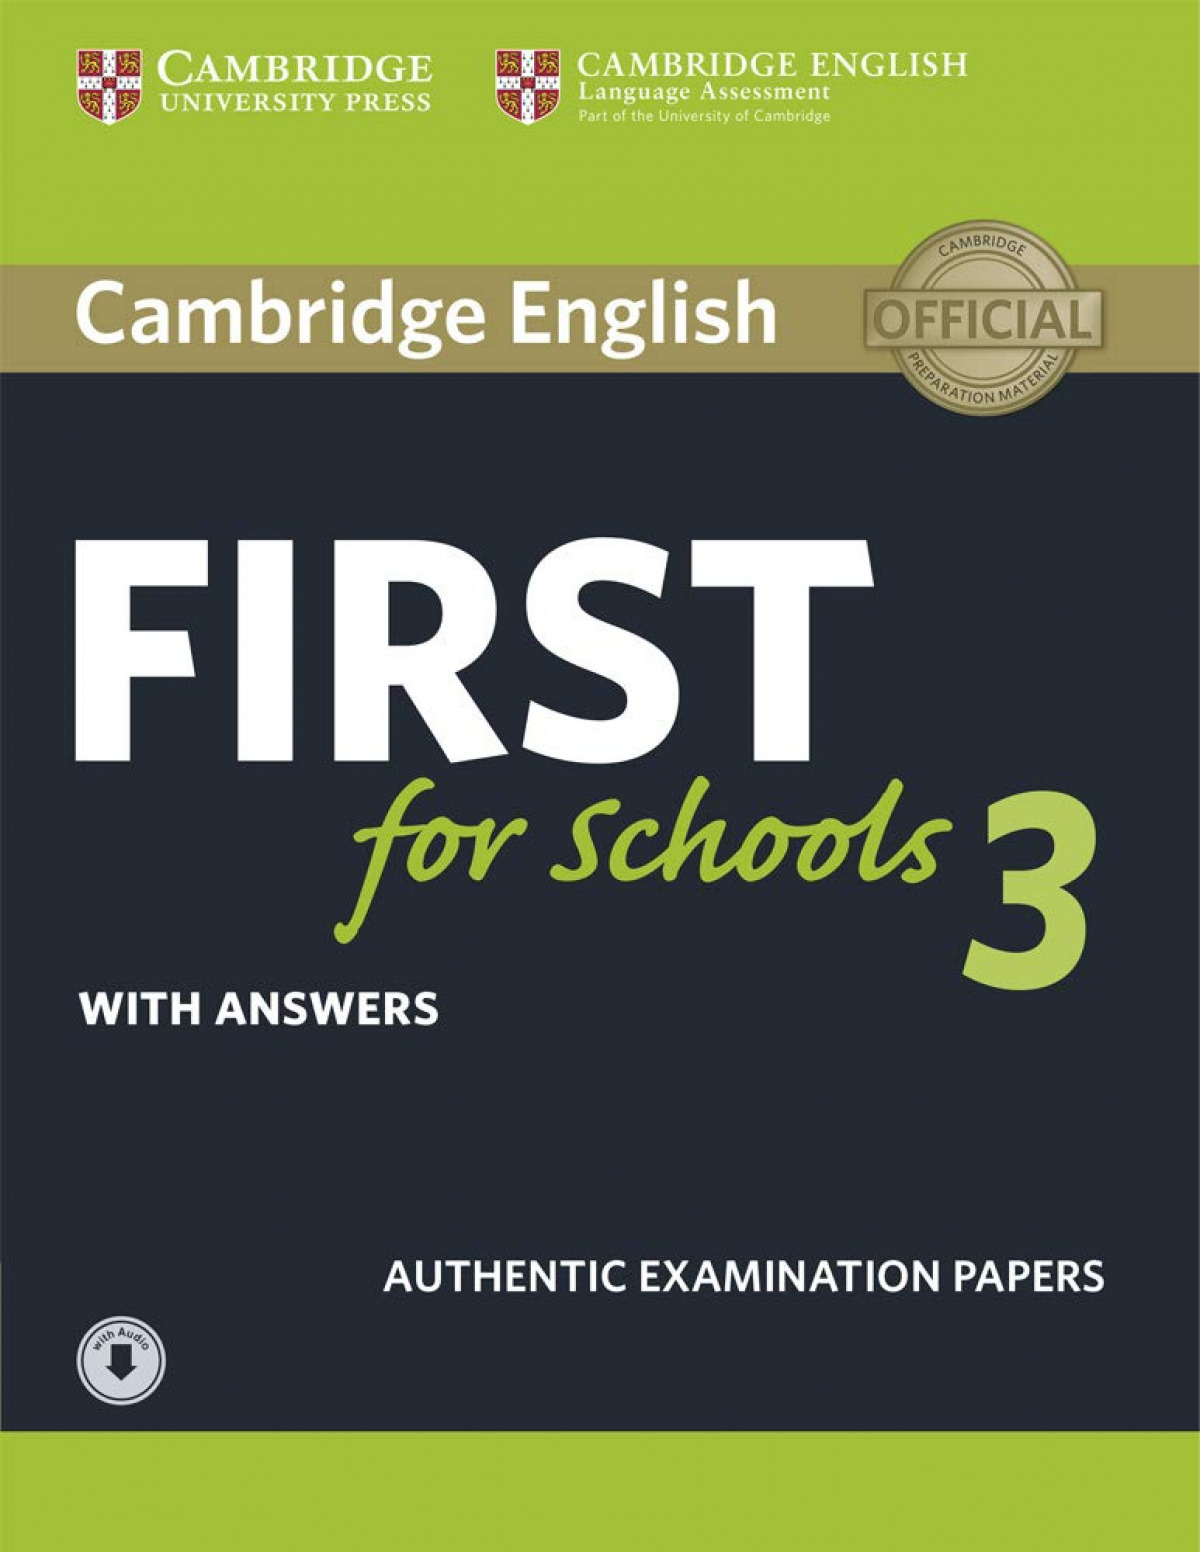 (15).CAMBRIDGE ENGLISH FIRST SCHOOLS 3 SELF STUDY PACK